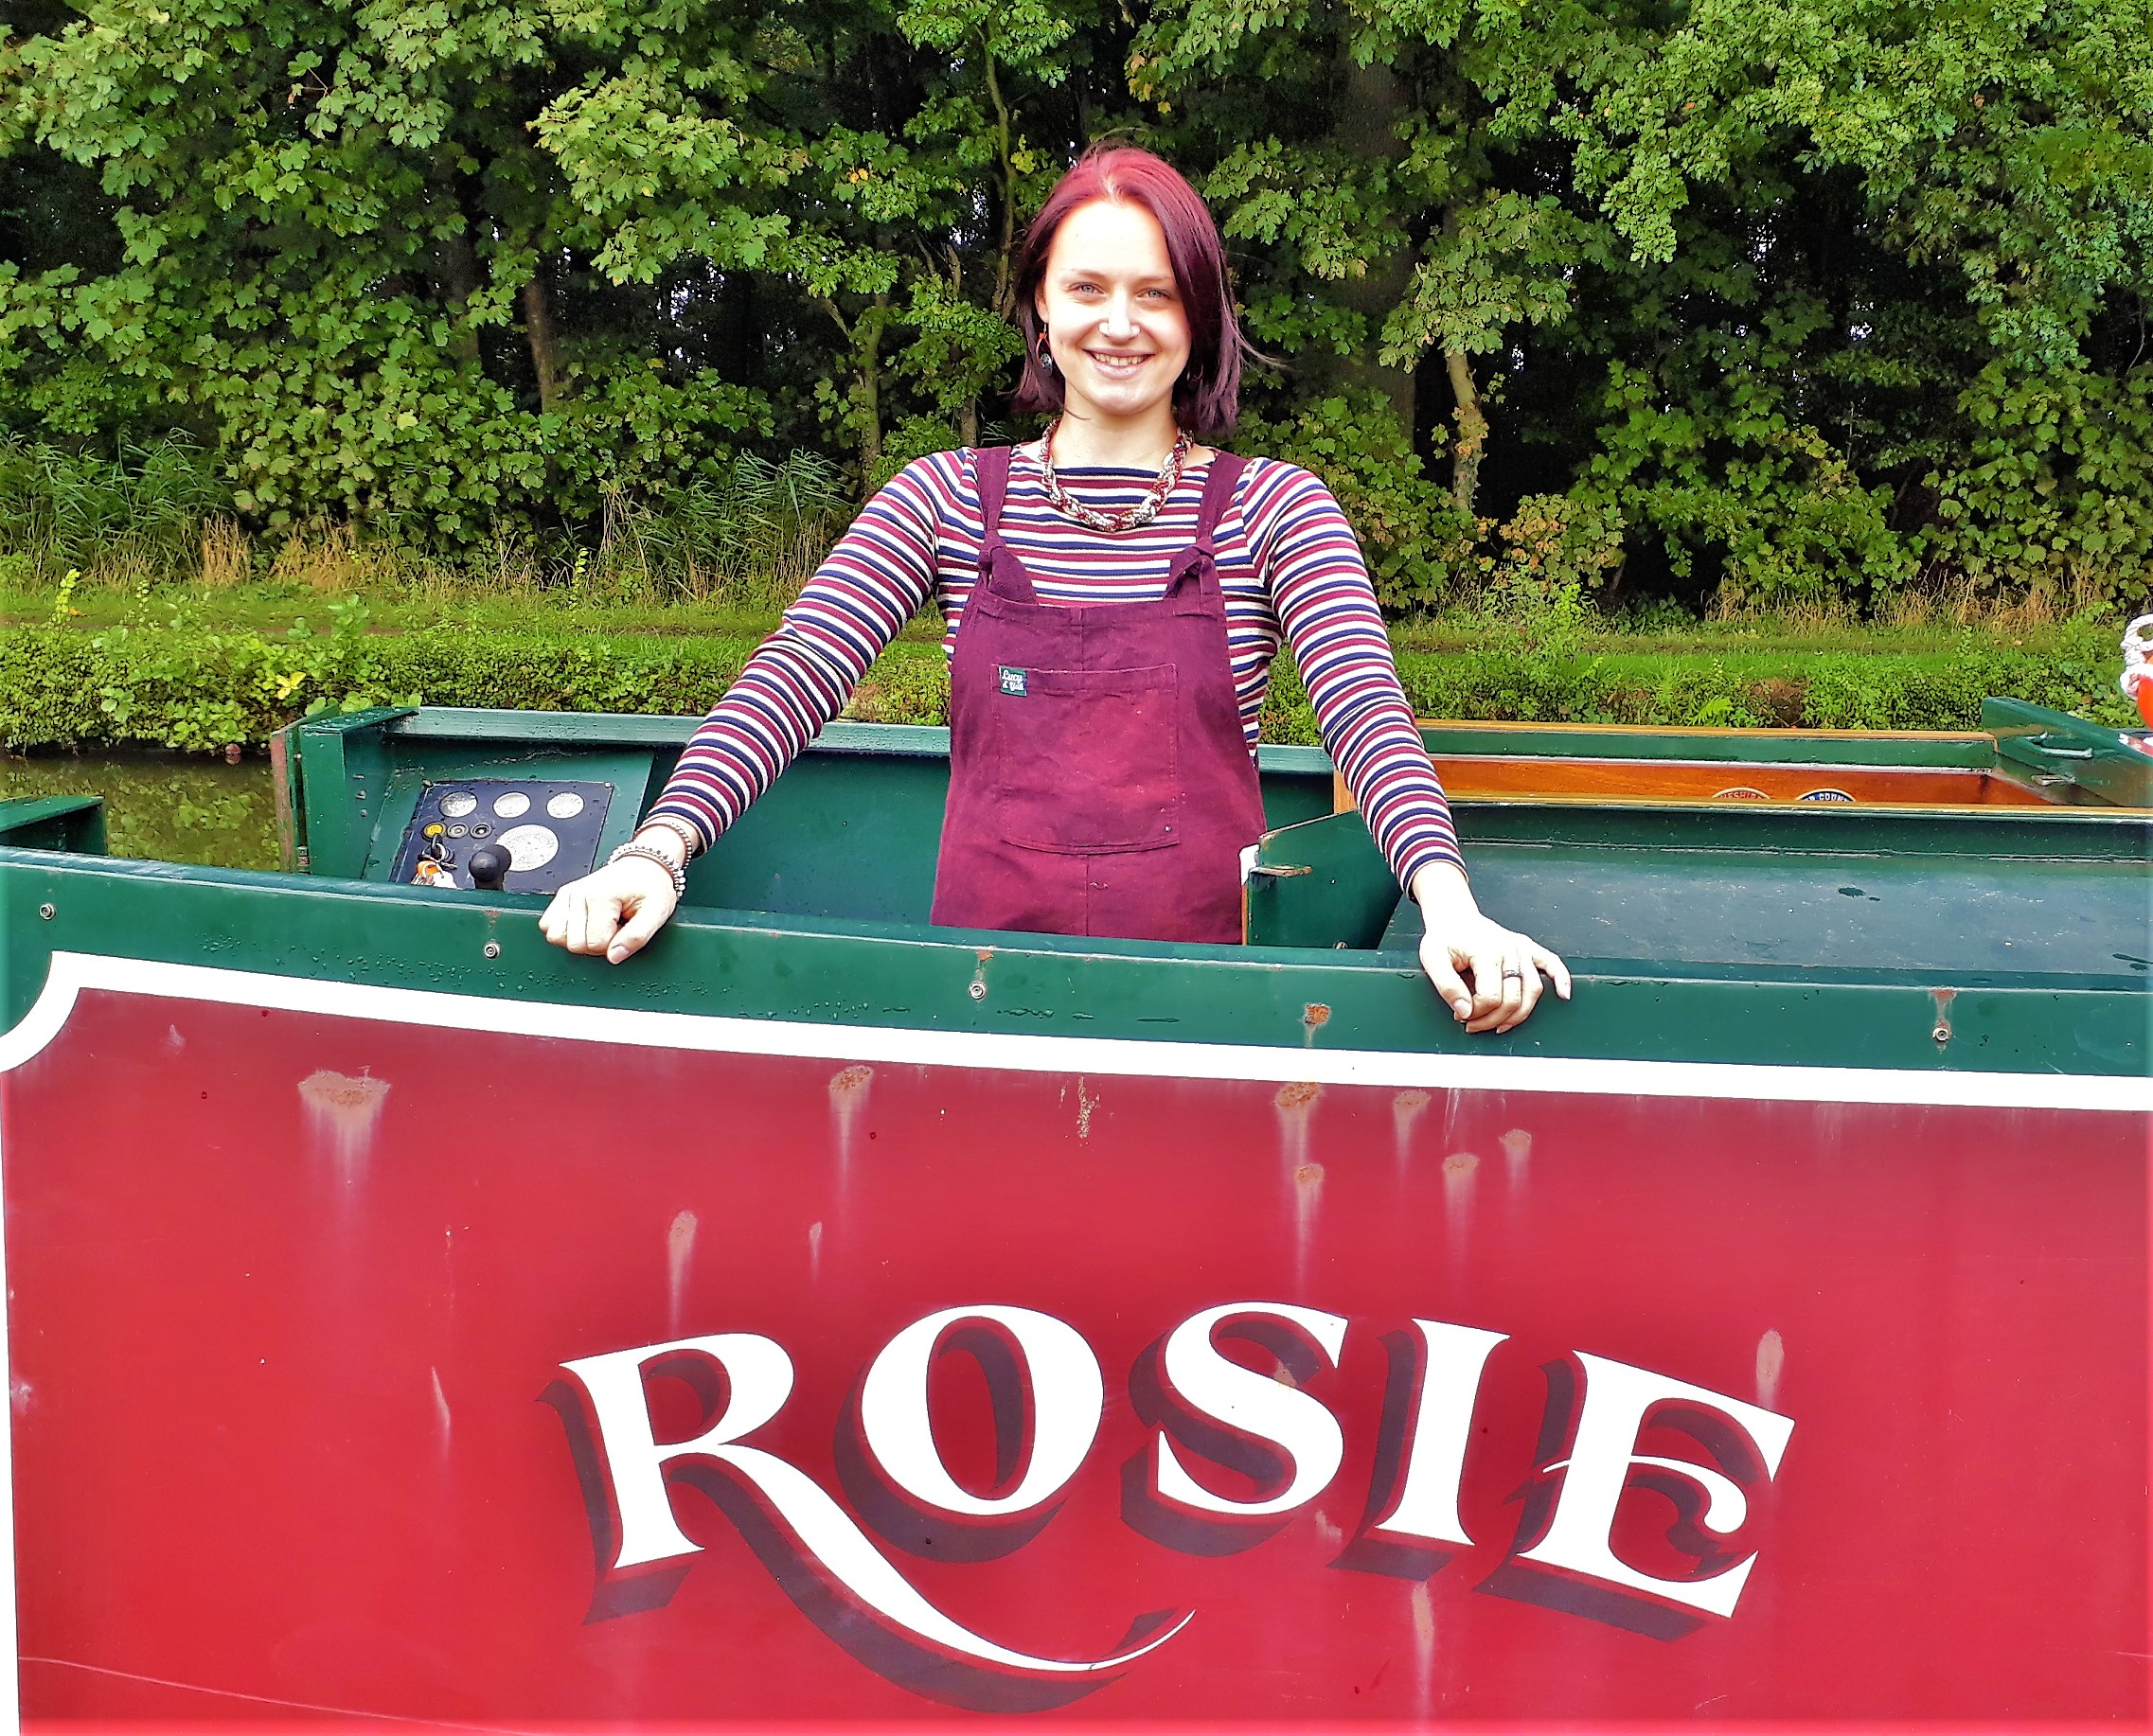 Rosie on the narrow boat also called Rosie